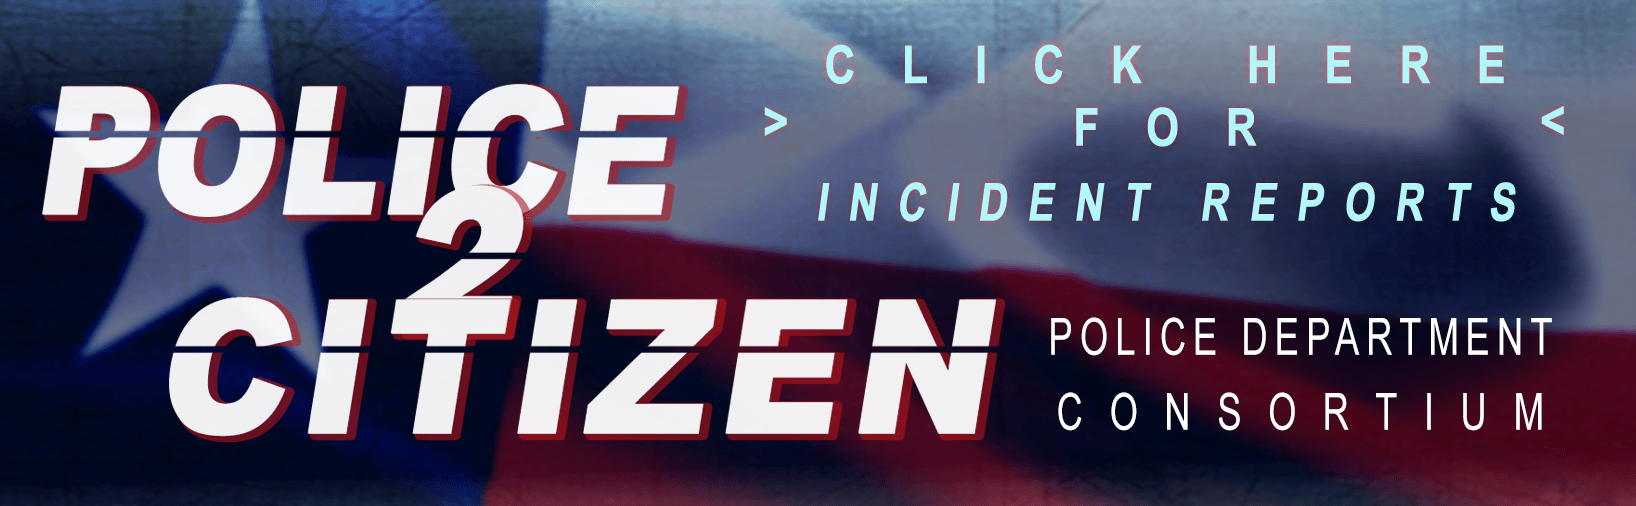 Police2Citizen - View Incident Reports